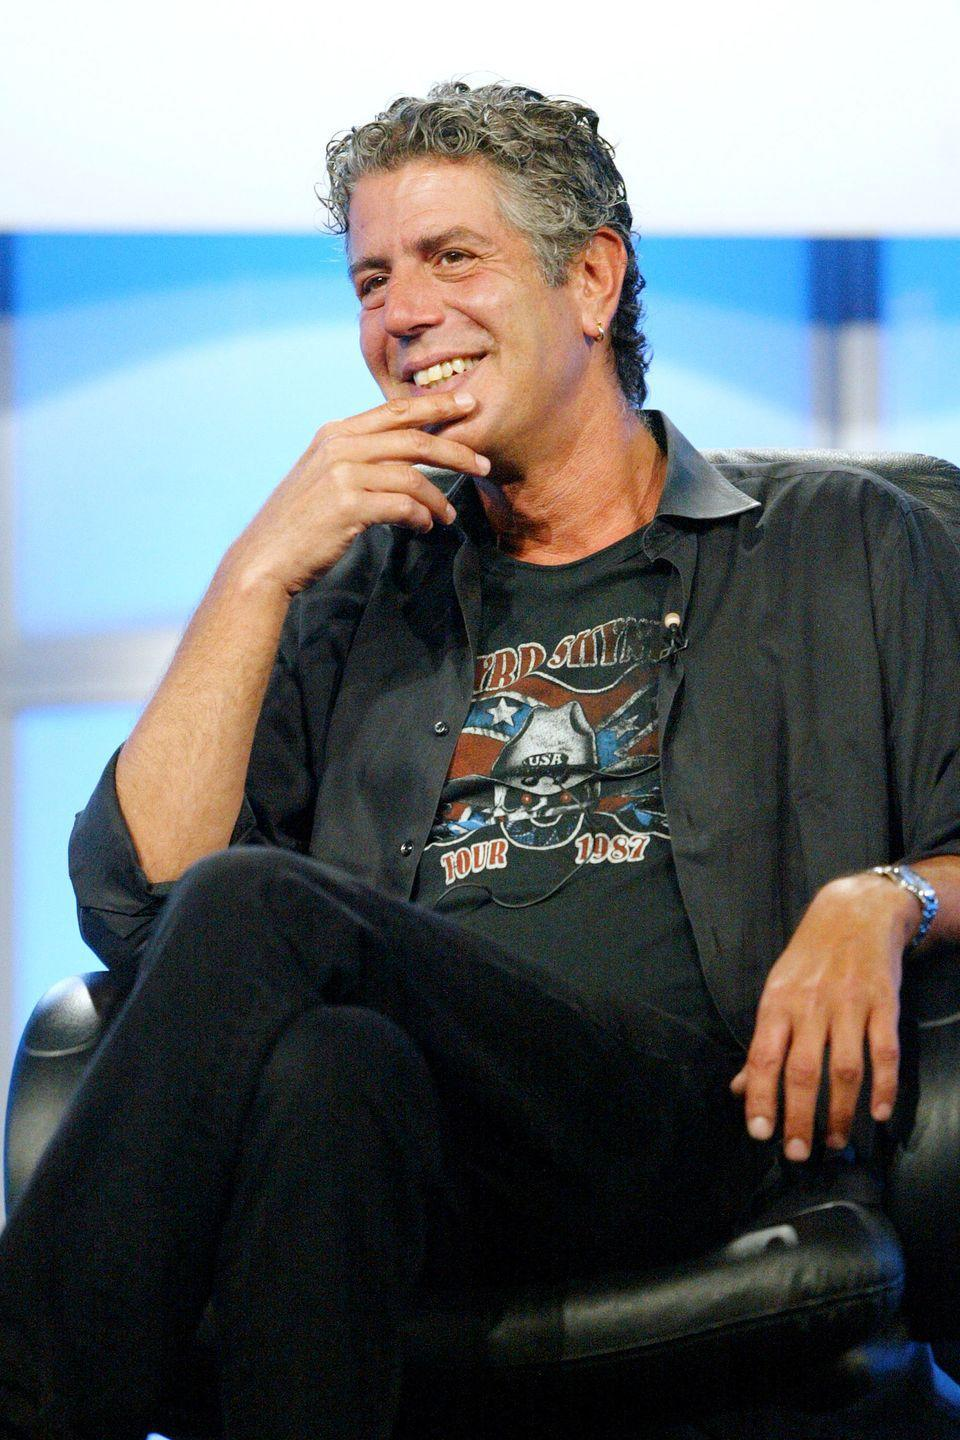 <p>Also in 2005, <em>No Reservations</em> featuring Bourdain as globetrotting host debuted on the Travel Channel. Here, Bourdain attends a panel discussion on July 16, 2005 in Beverly Hills.</p>